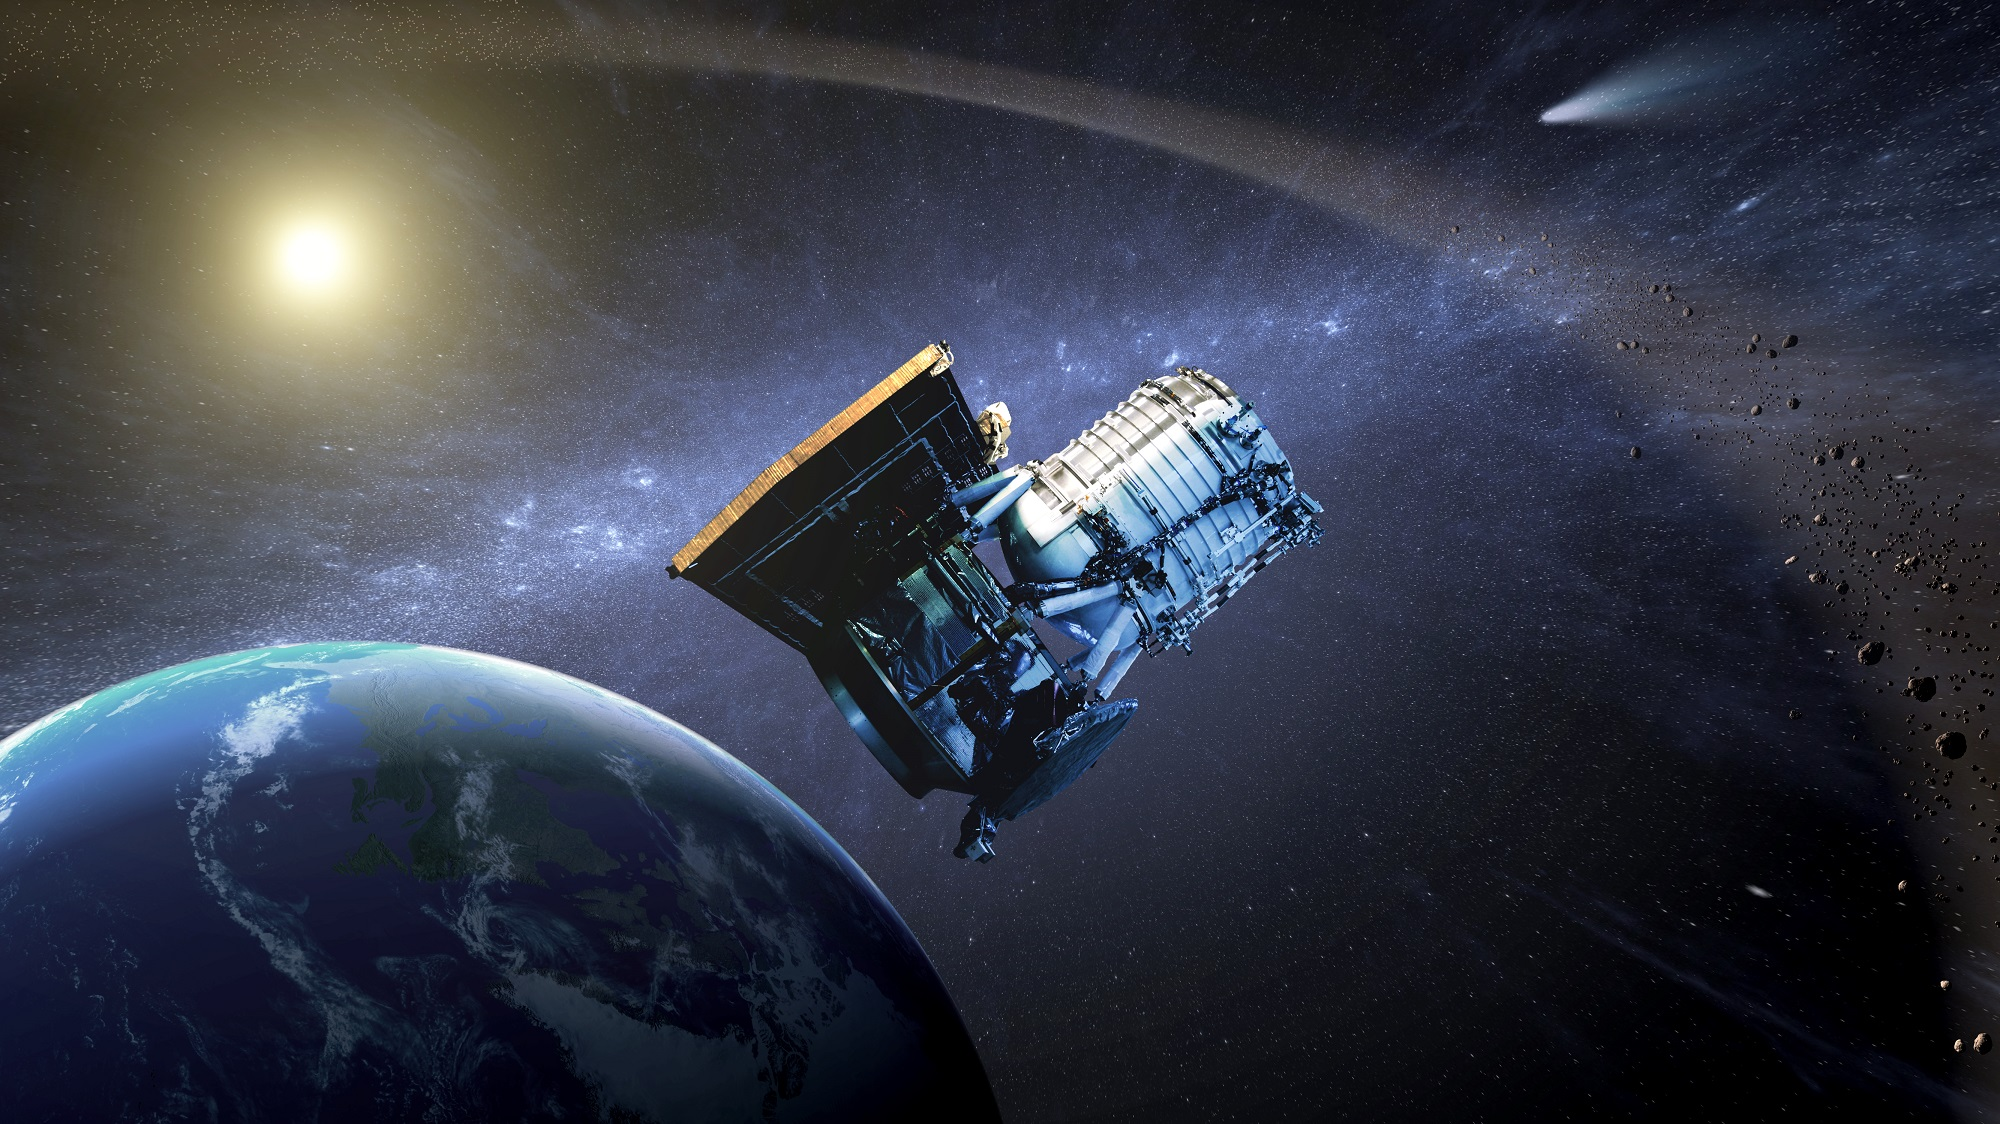 Artist's concept of the Wide-field Infrared Survey Explorer as its orbit around Earth. Credit: NASA/JPL